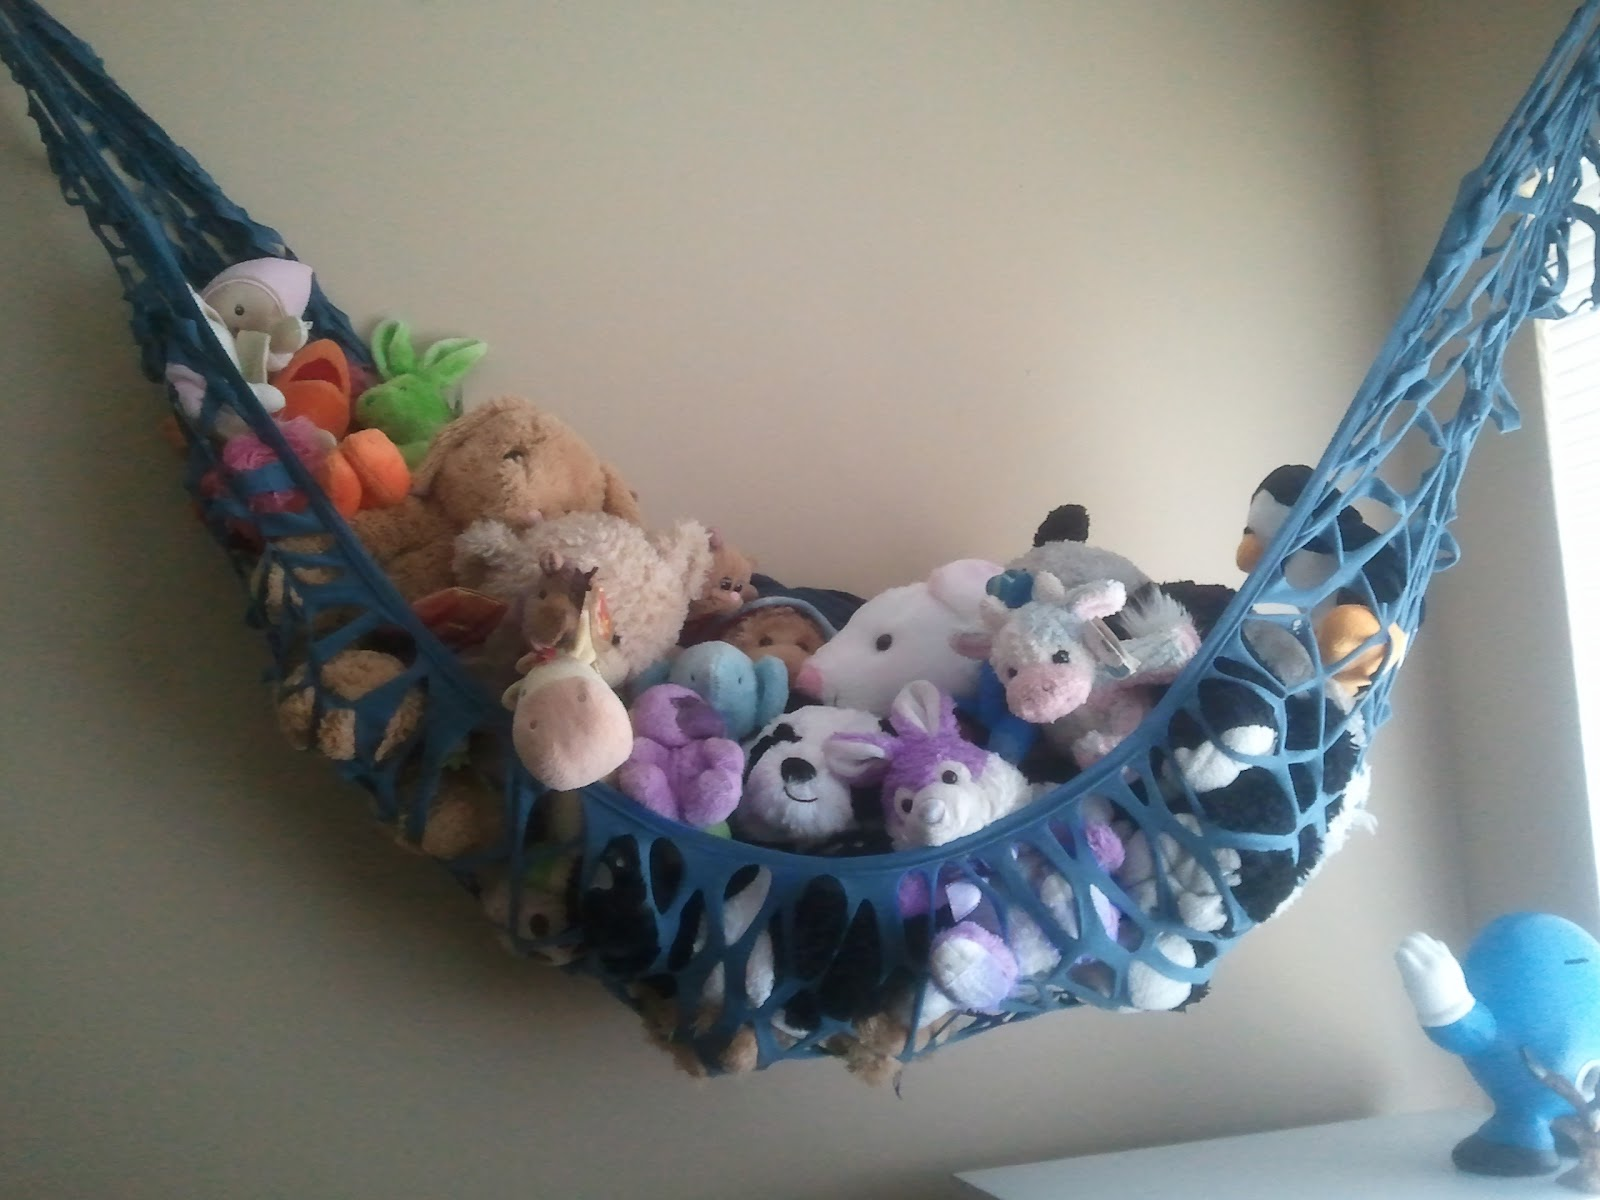 Stuffed Animal Toy Storage: Tales Of A Hunni-Bunni Fe: Super Quick Toy Storage From A